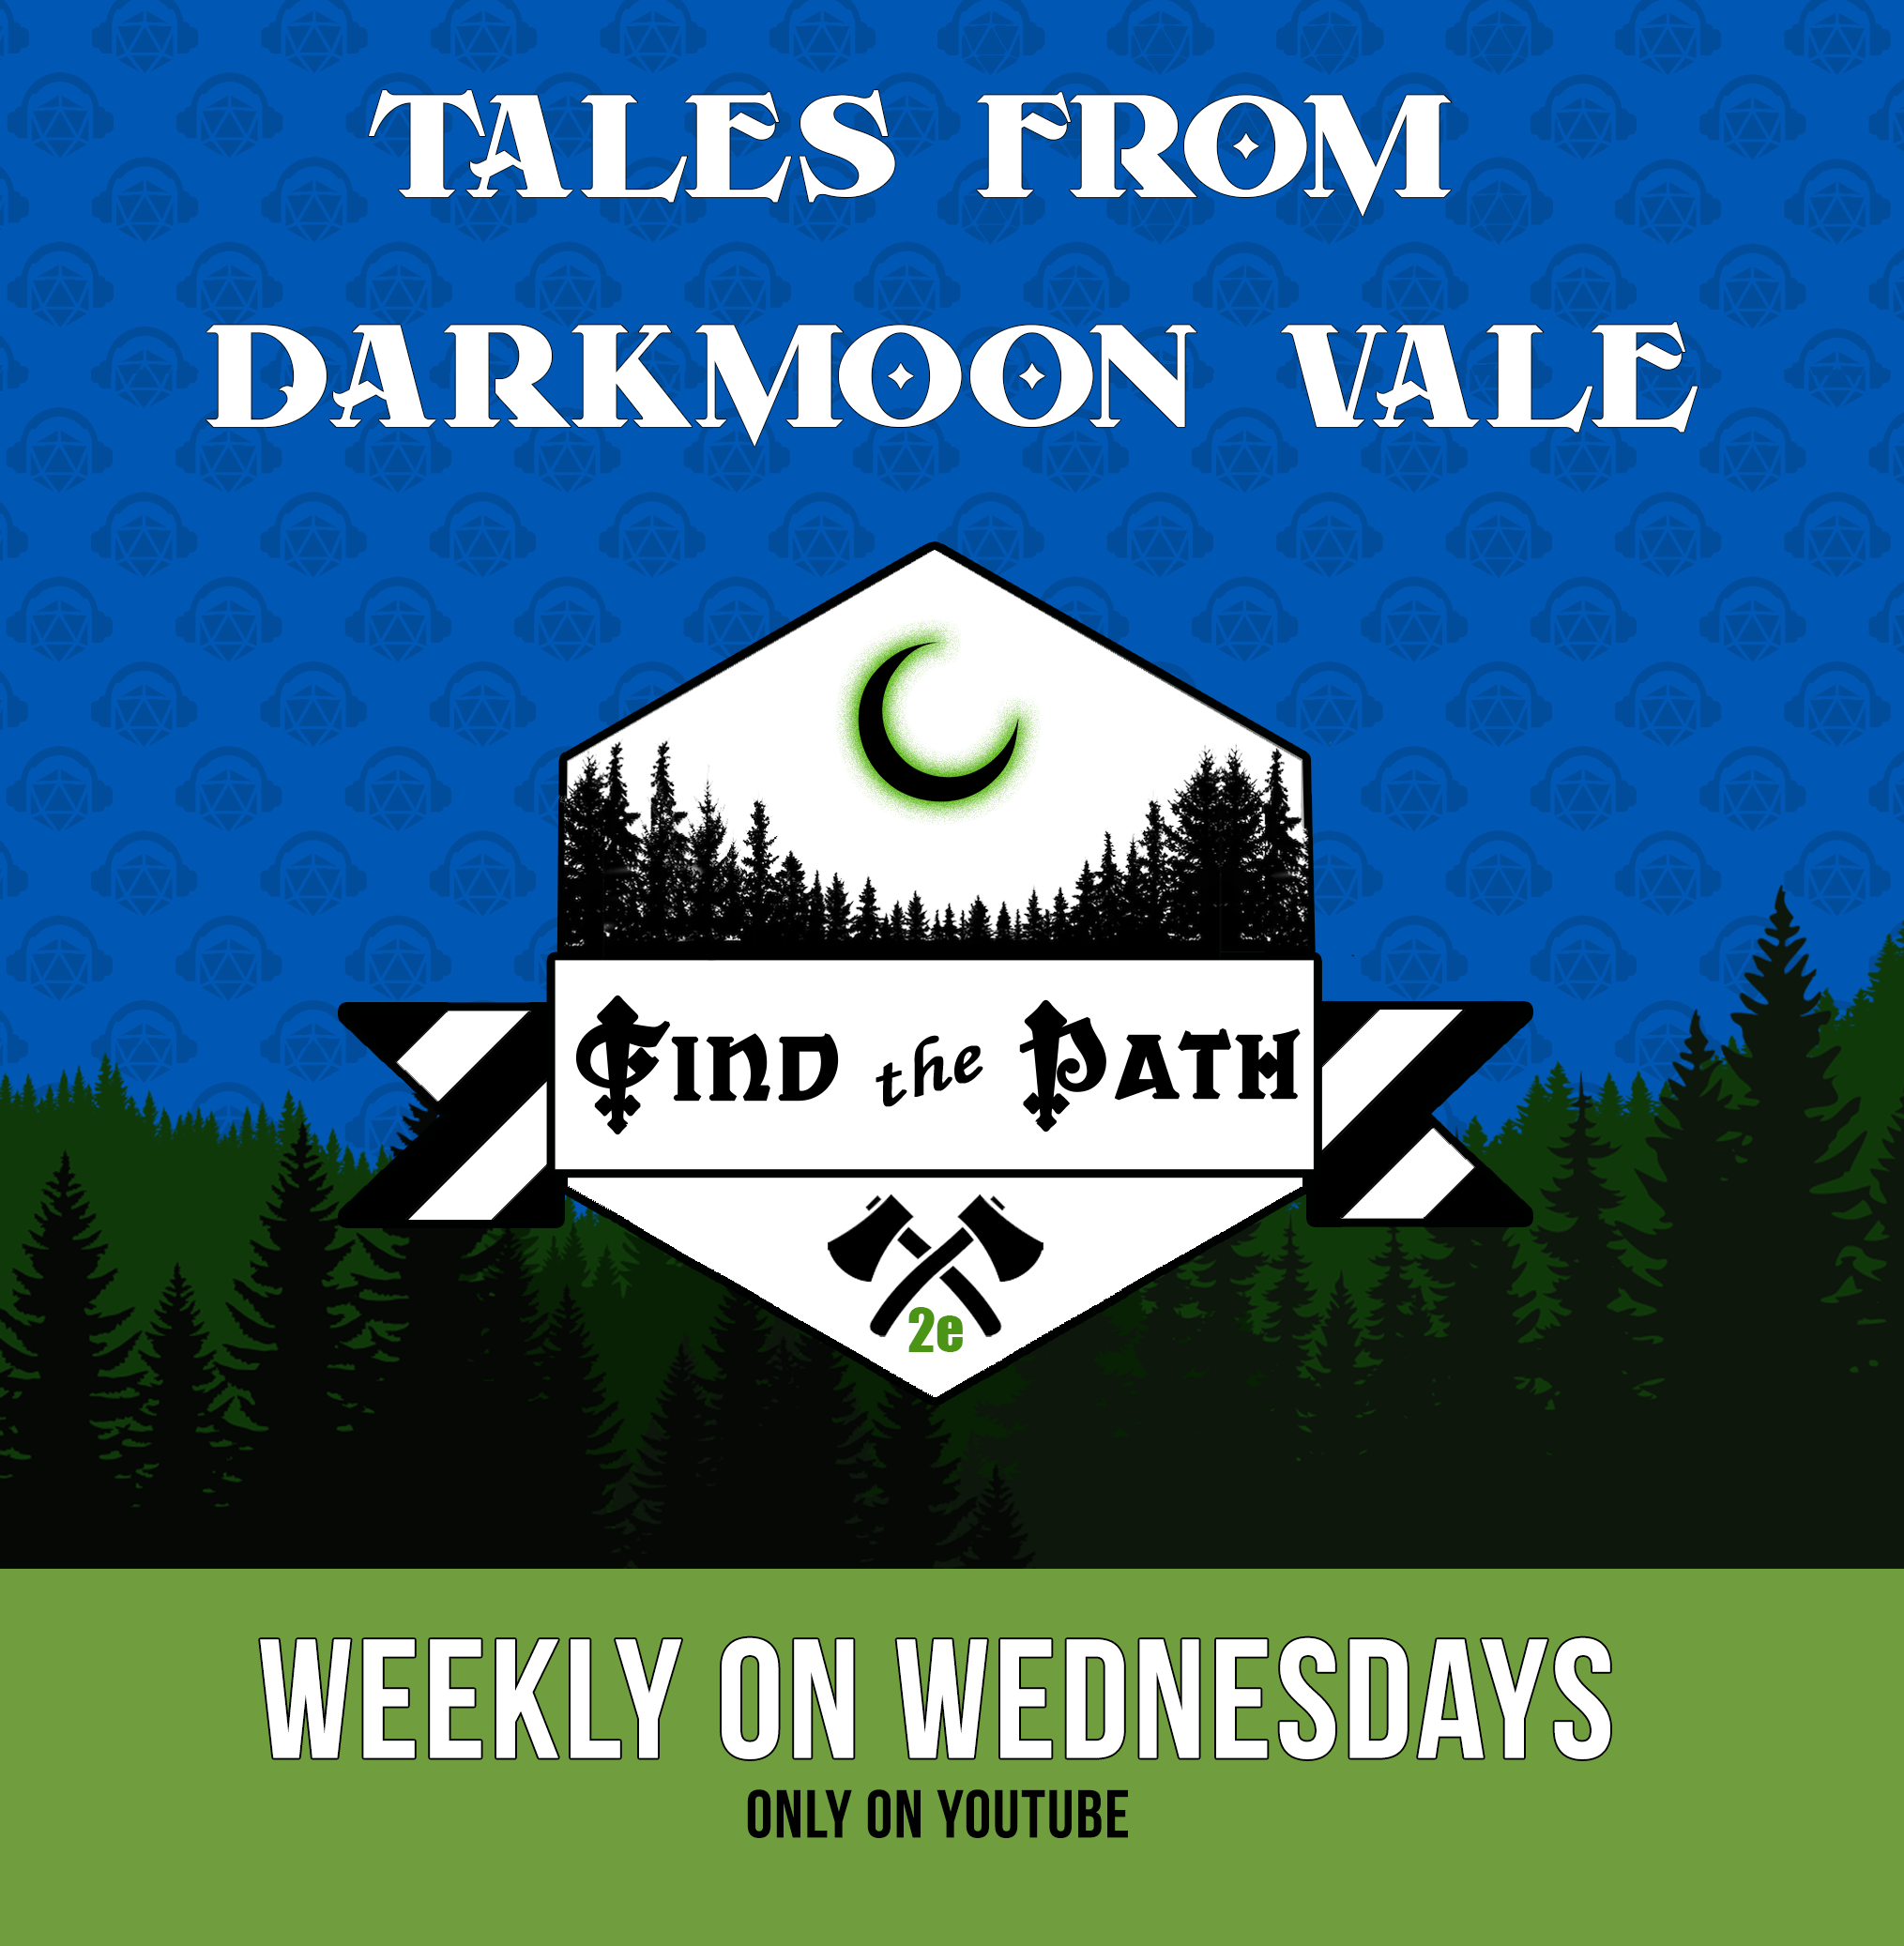 Tales from Darkmoon Vale